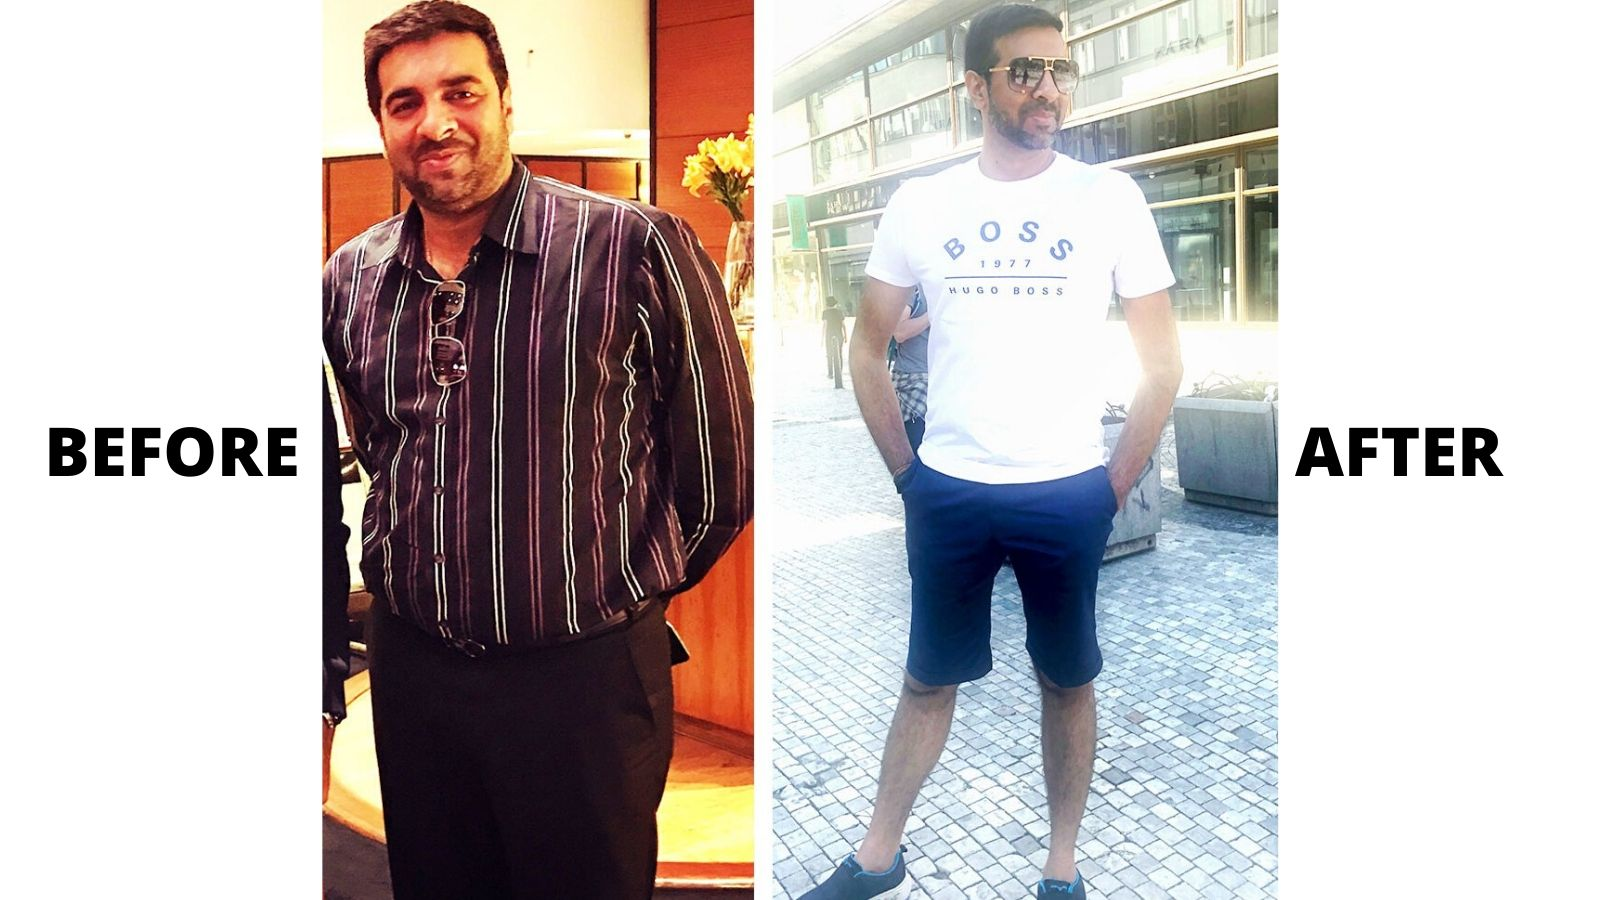 how-this-42-year-old-lost-18-kgs-by-tweaking-his-eating-habits-instead-of-crash-dieting